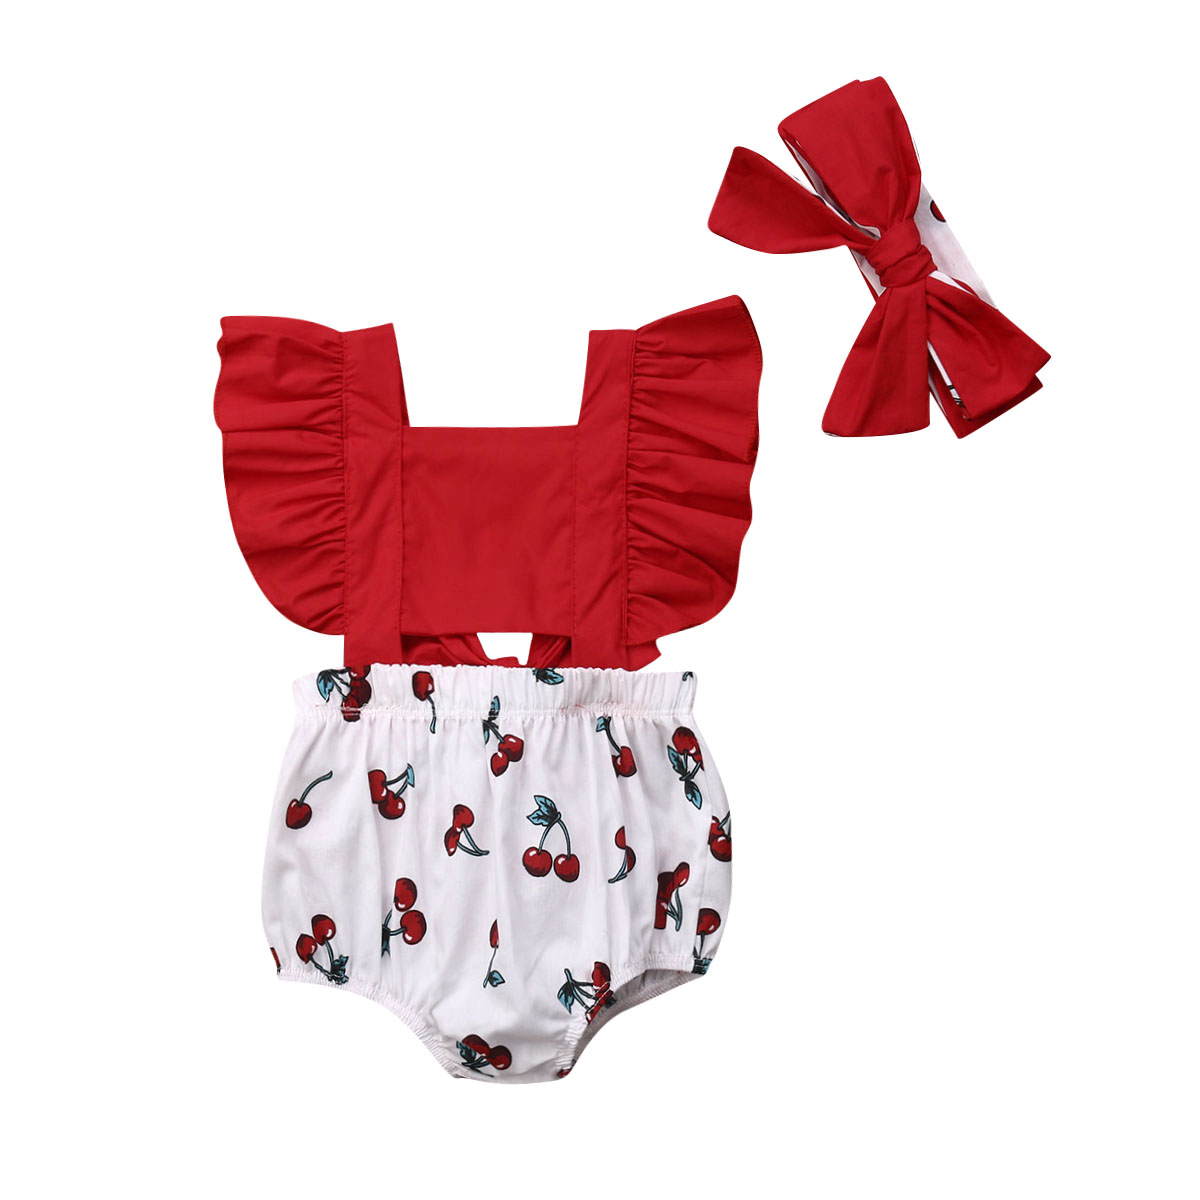 Infant Newborn Baby Girls Rompers Cherry Print Ruffles Jumpsuit Playsuit Sunsuit Baby Girls Costumes Summer Clothes